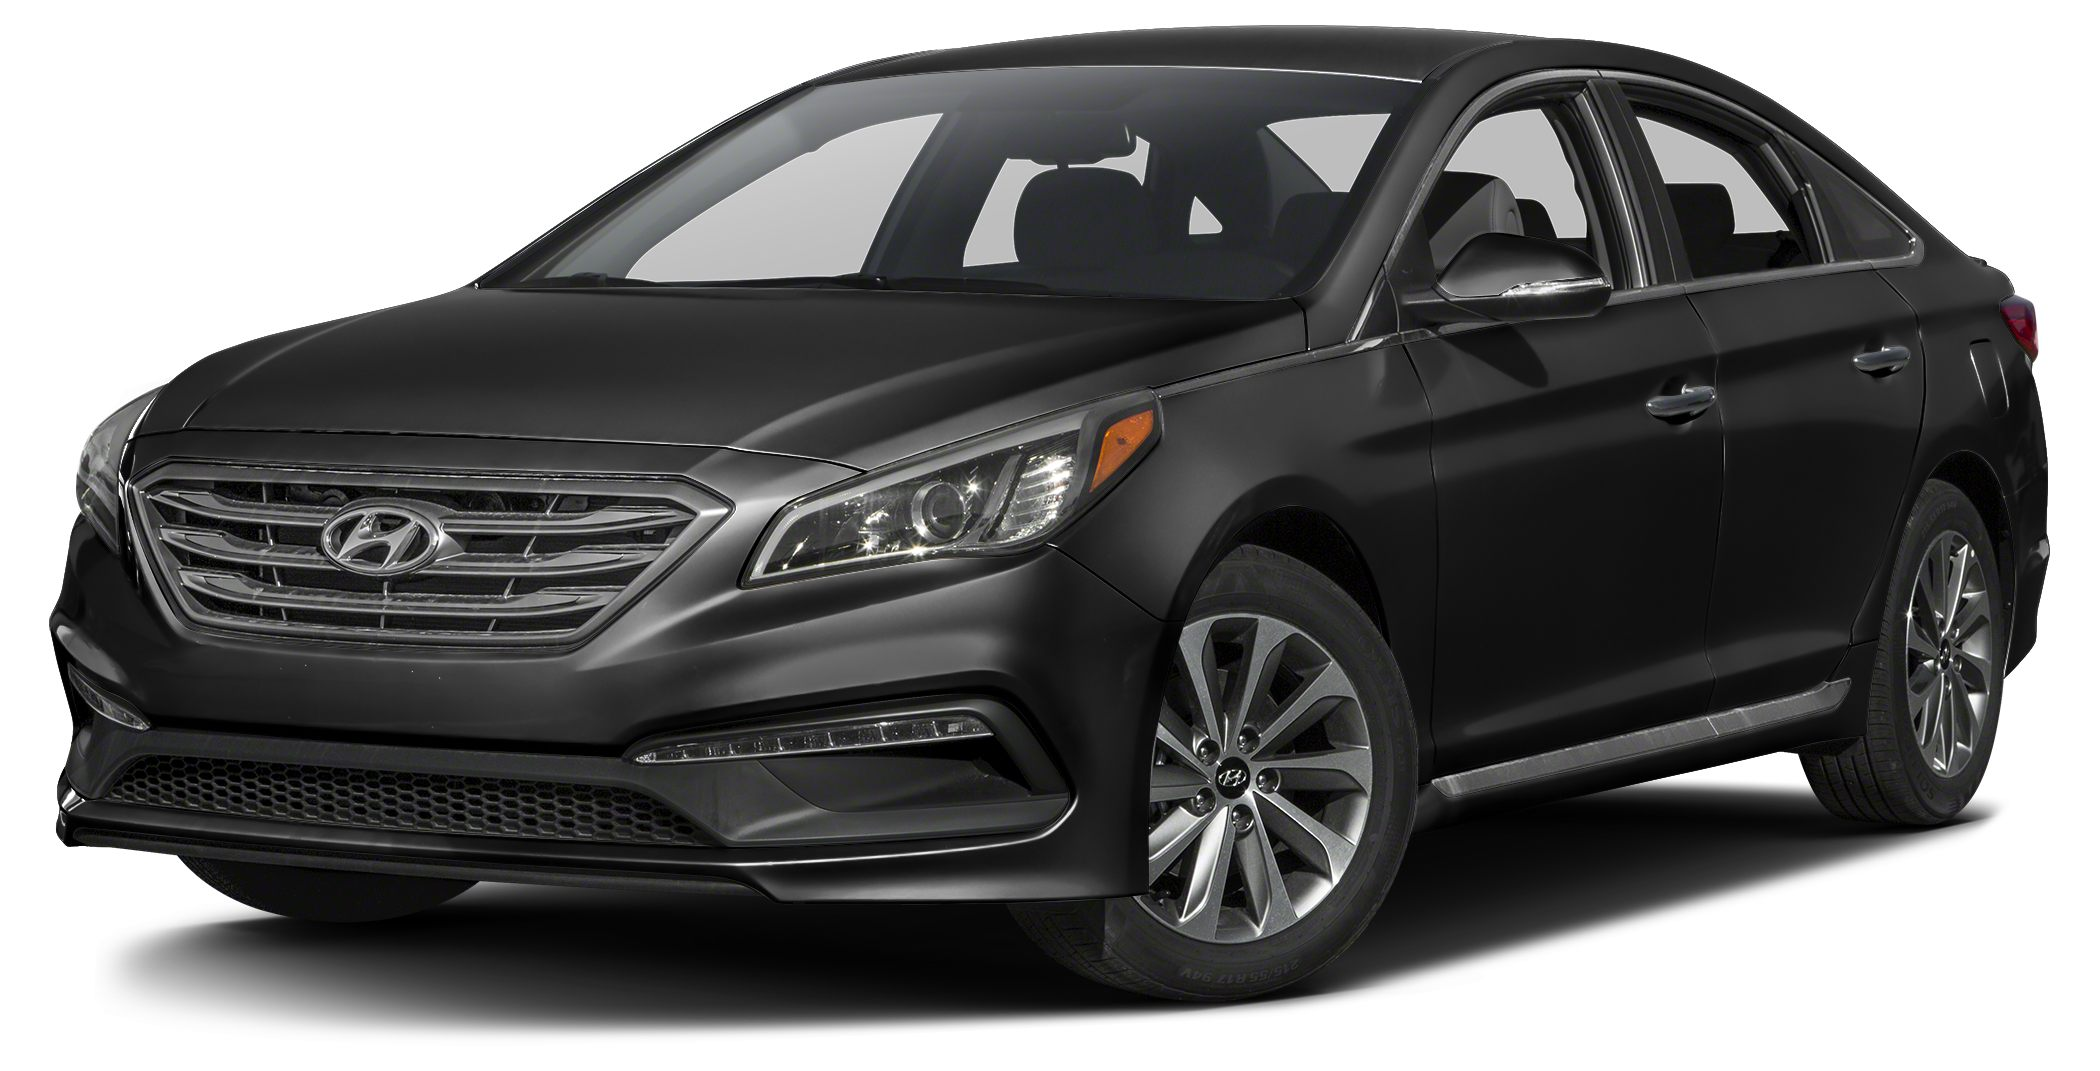 2017 Hyundai Sonata Sport ABS brakes Conventional Sunroof Electronic Stability Control Emergenc